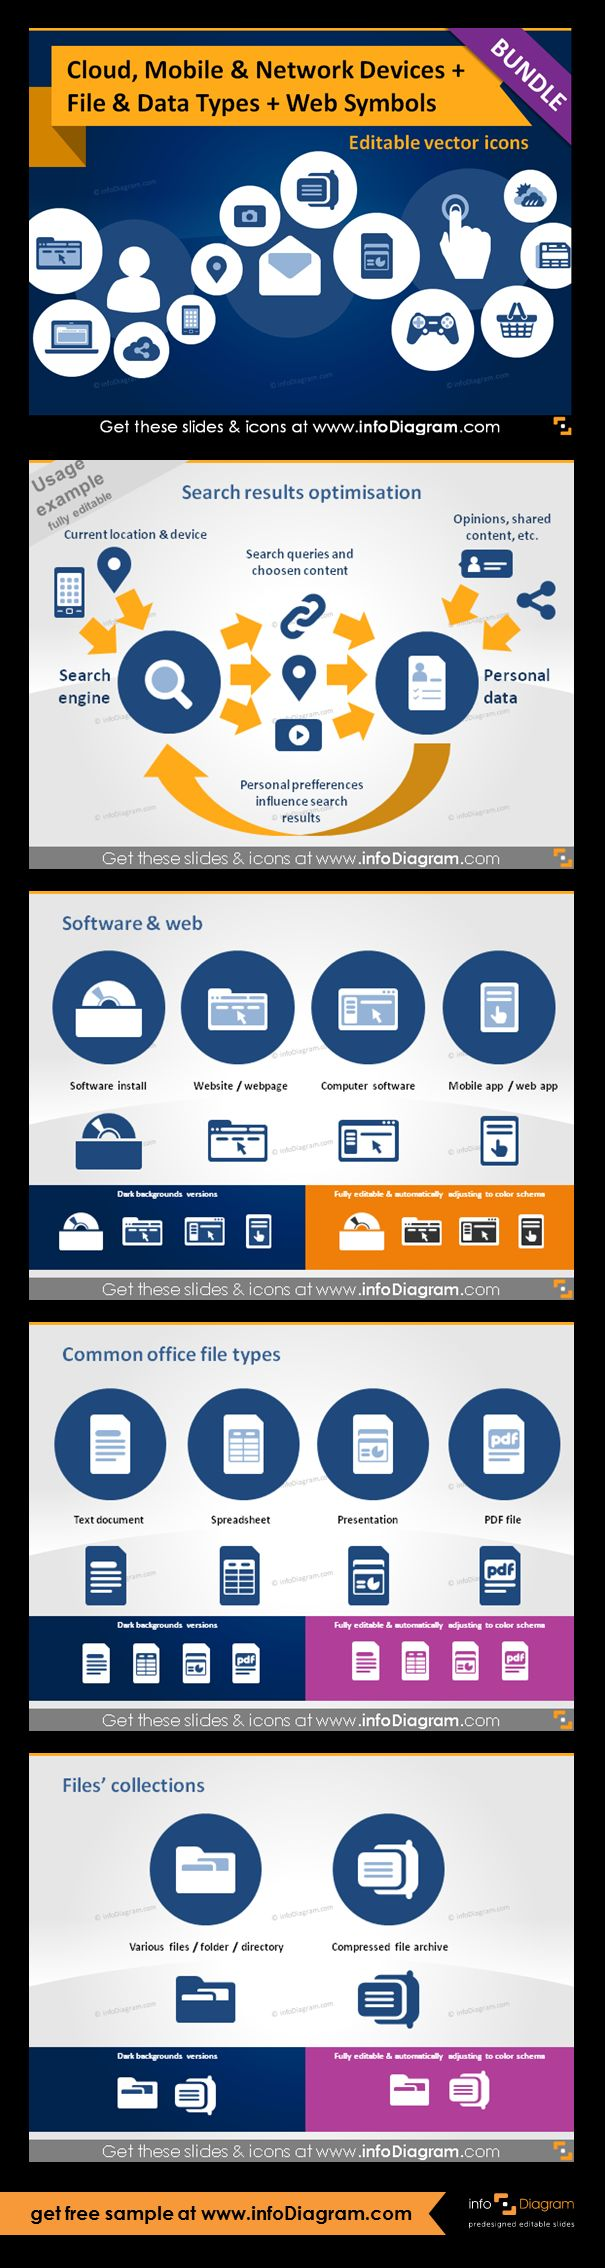 IT concept ideas. Software and web pictogram symbols: Software Install, Website icon, Computer Software icon, Mobile app, Web app. Common office file types: Spreadsheet, Text document, Presentation, PDF file. Files' collections: Files folder, directory, Compressed file archive. Search results optimization diagram.